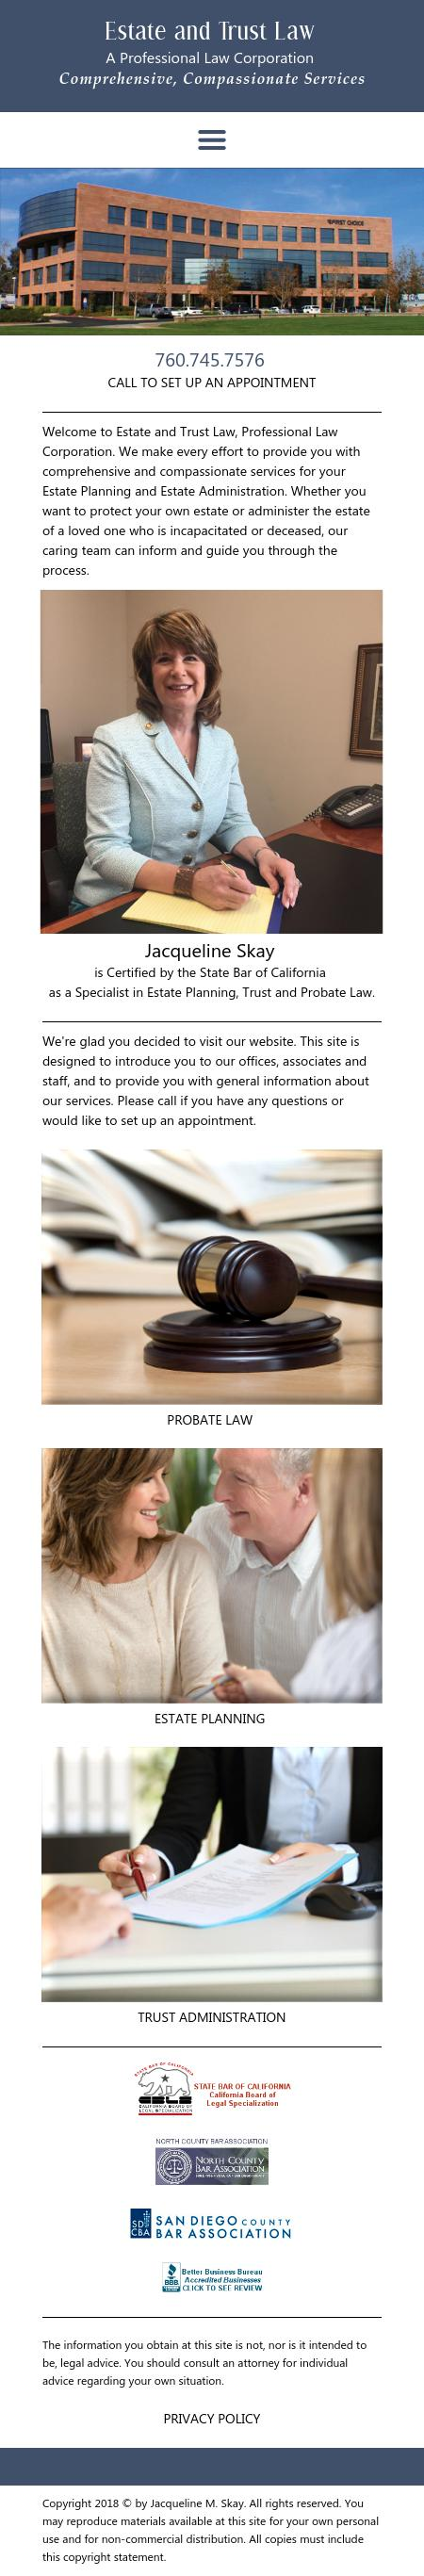 Skay Jacqueline M Attorney At Law - Carlsbad CA Lawyers